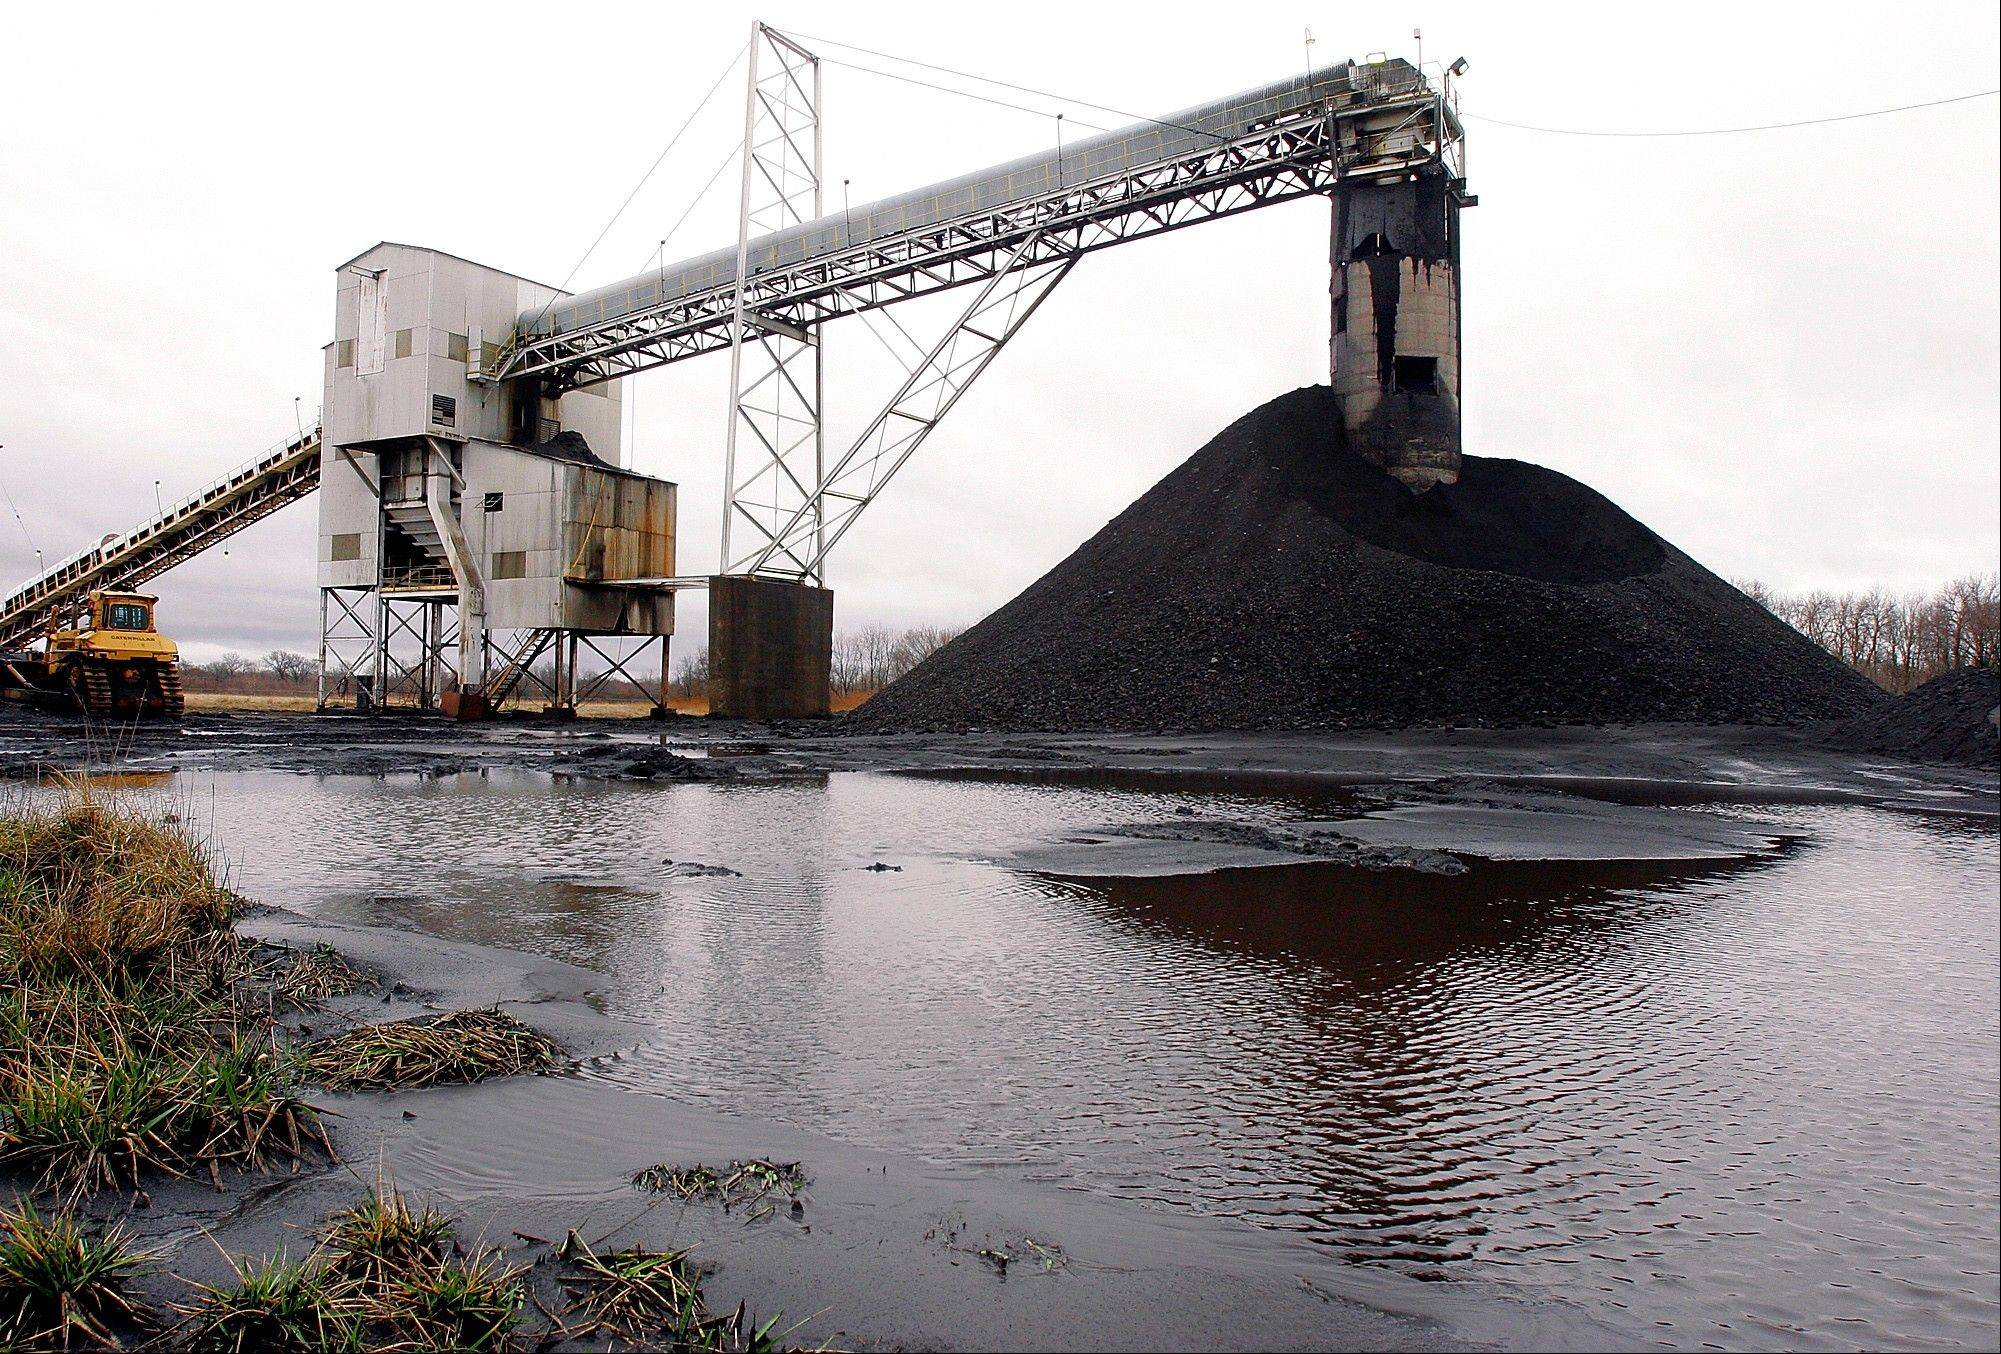 The Illinois Office of Coal Development said that 13 million tons of Illinois coal was exported last year. That's a fivefold increase from the 2.5 million tons shipped out of the U.S. in 2010.